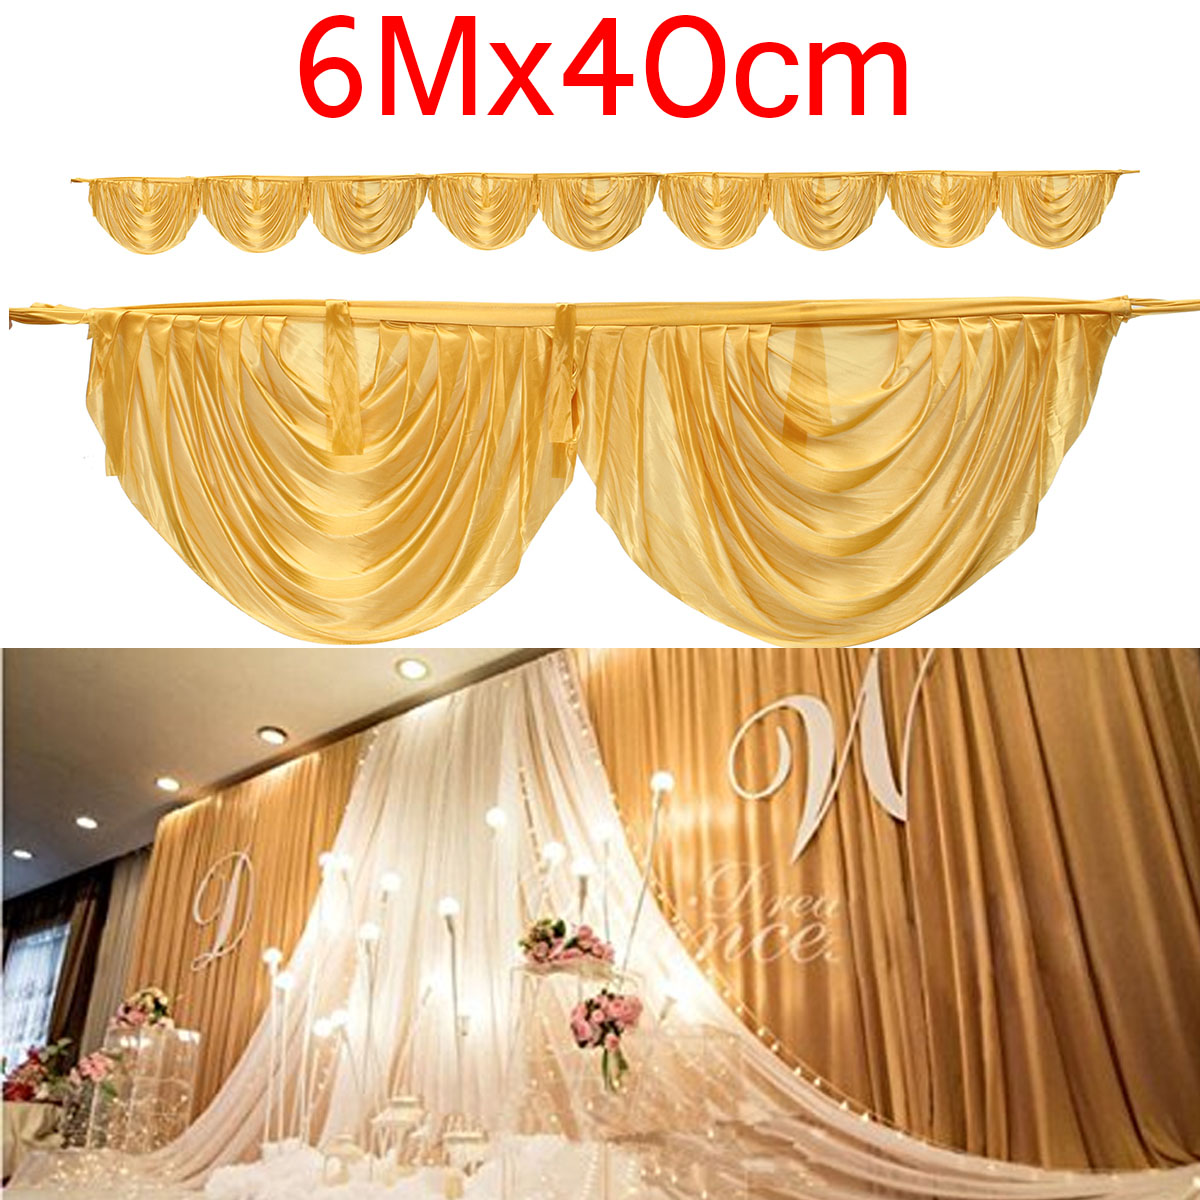 Gold Silk Fabric Wedding Backdrops Curtains Swags DIY Wedding Decoration Party Venue Stage Background Cloth Party Supplies